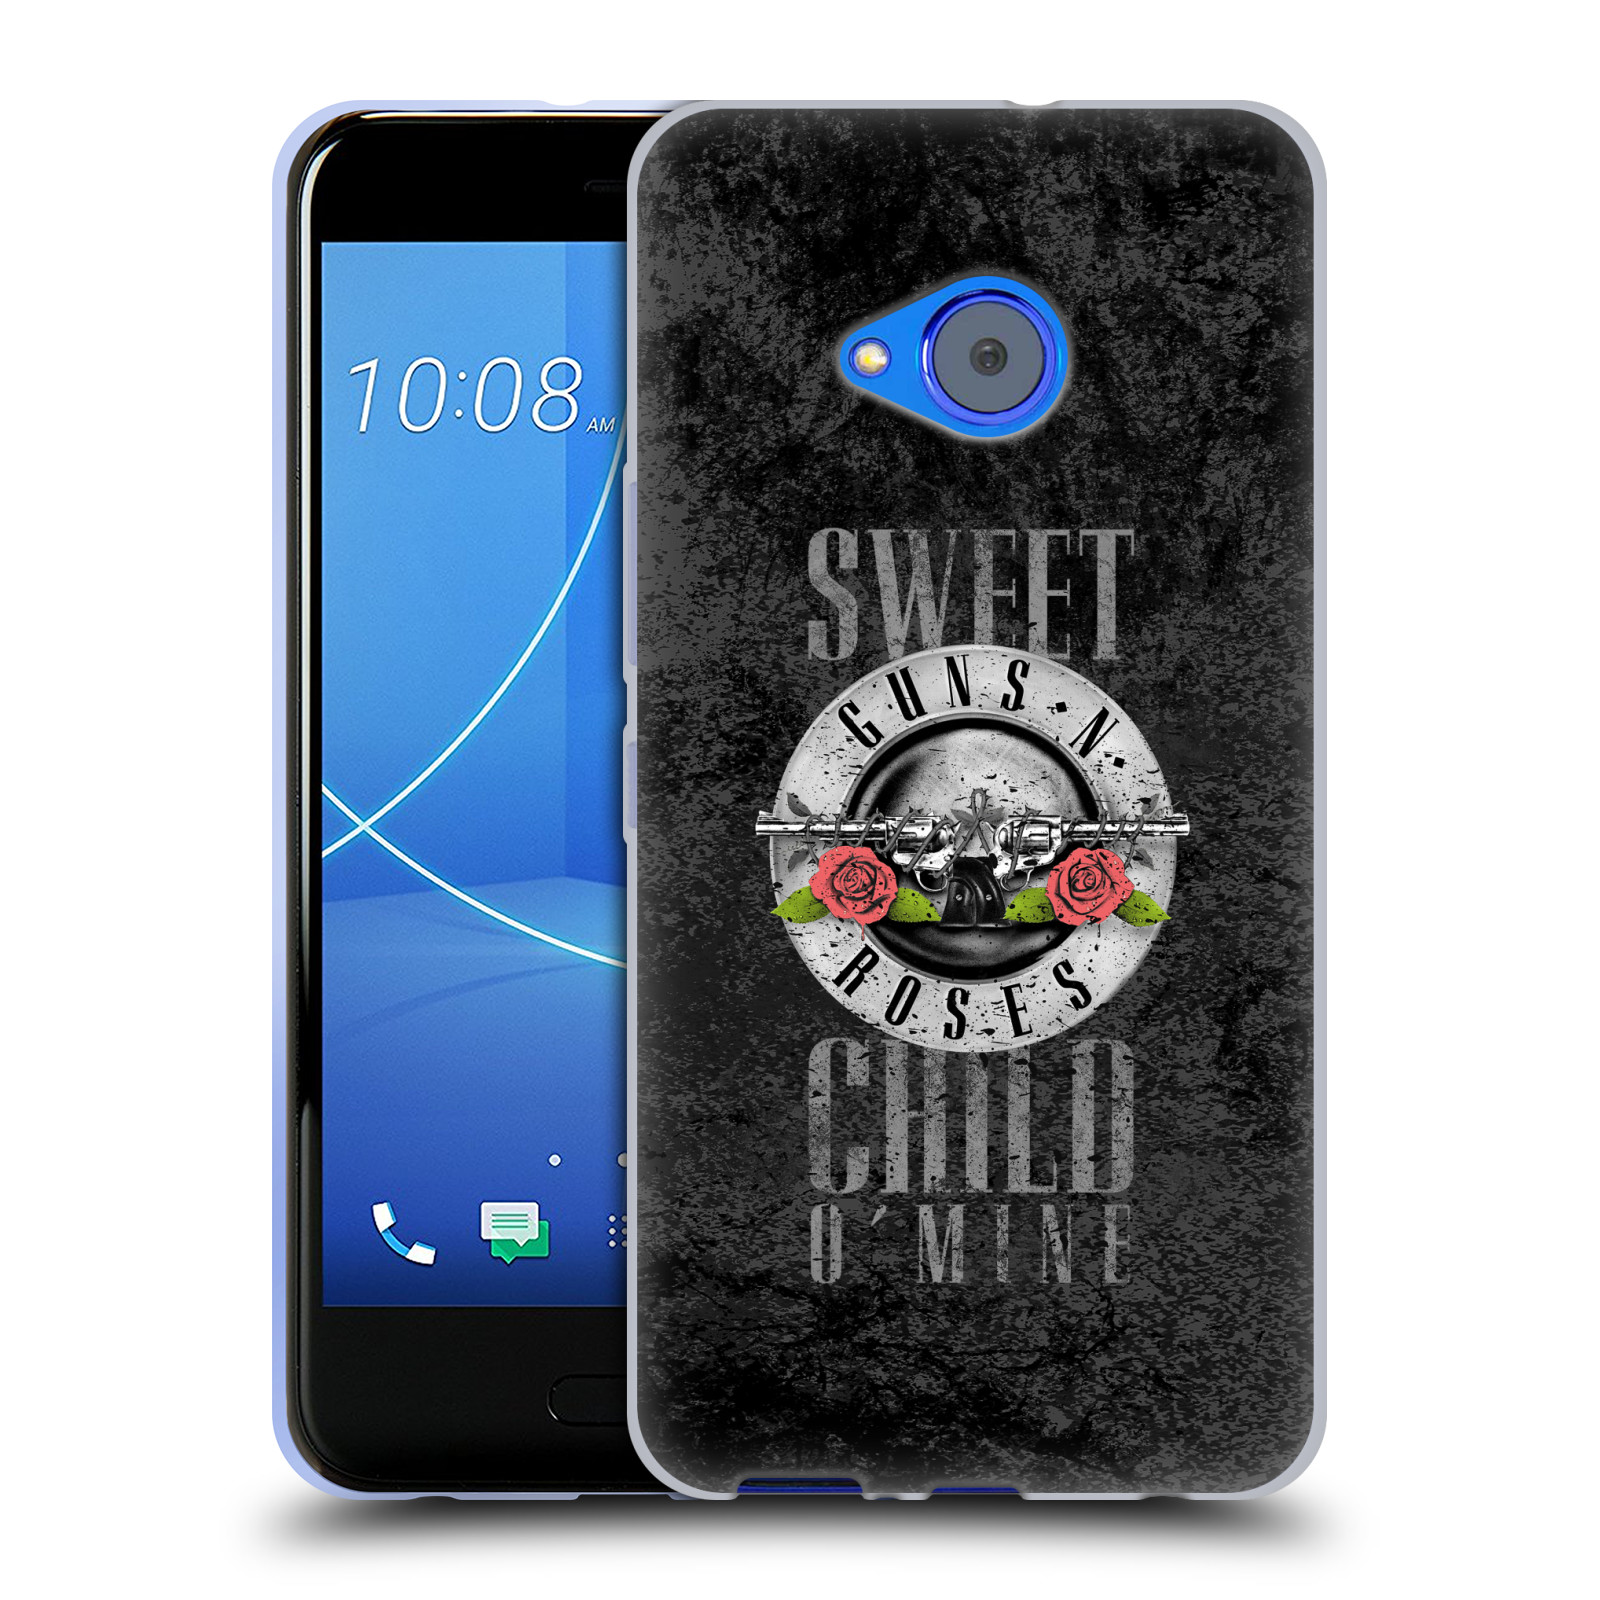 Silikonové pouzdro na mobil HTC U11 Life - Head Case - Guns N' Roses - Sweet Child